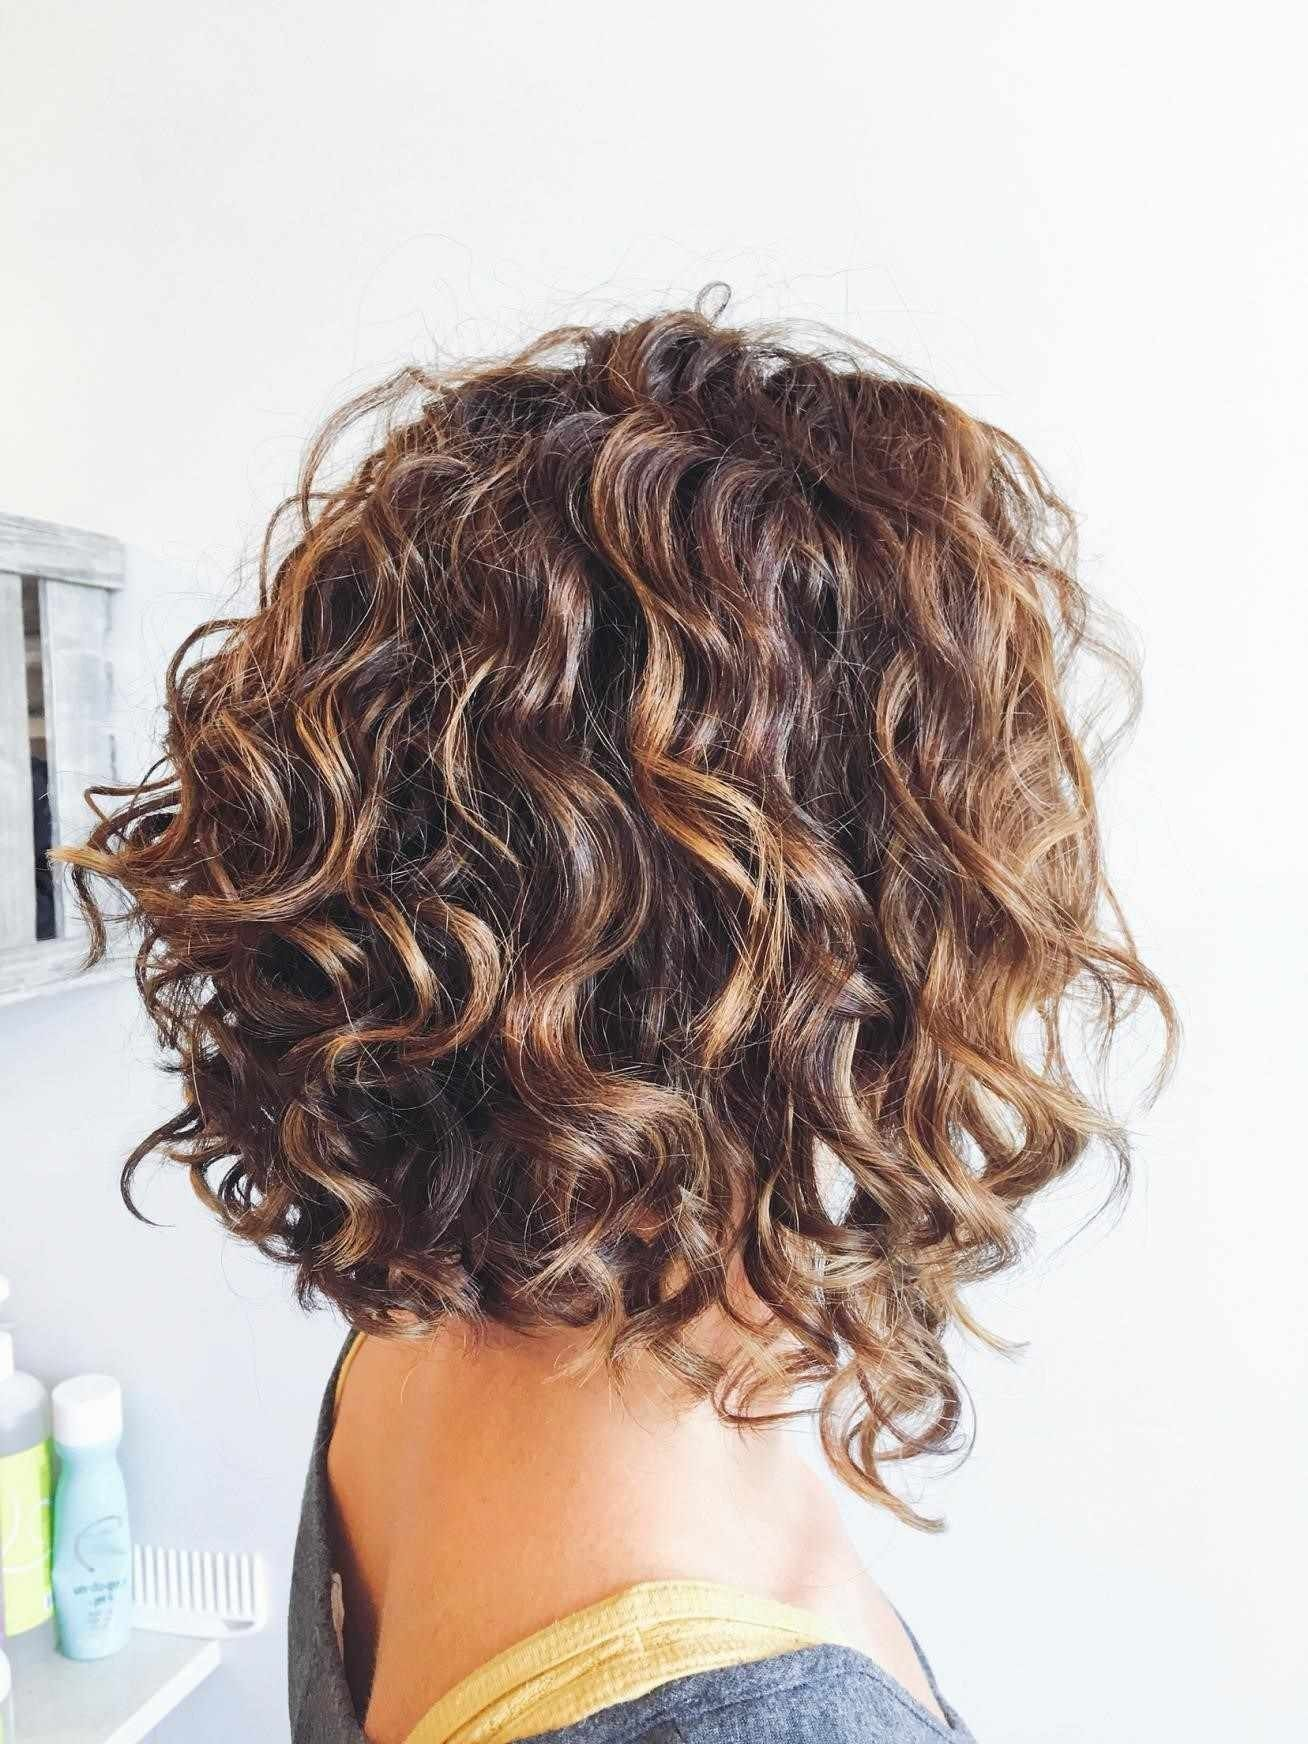 Natural curly bob   Curly hair styles naturally, Curly hair styles ...